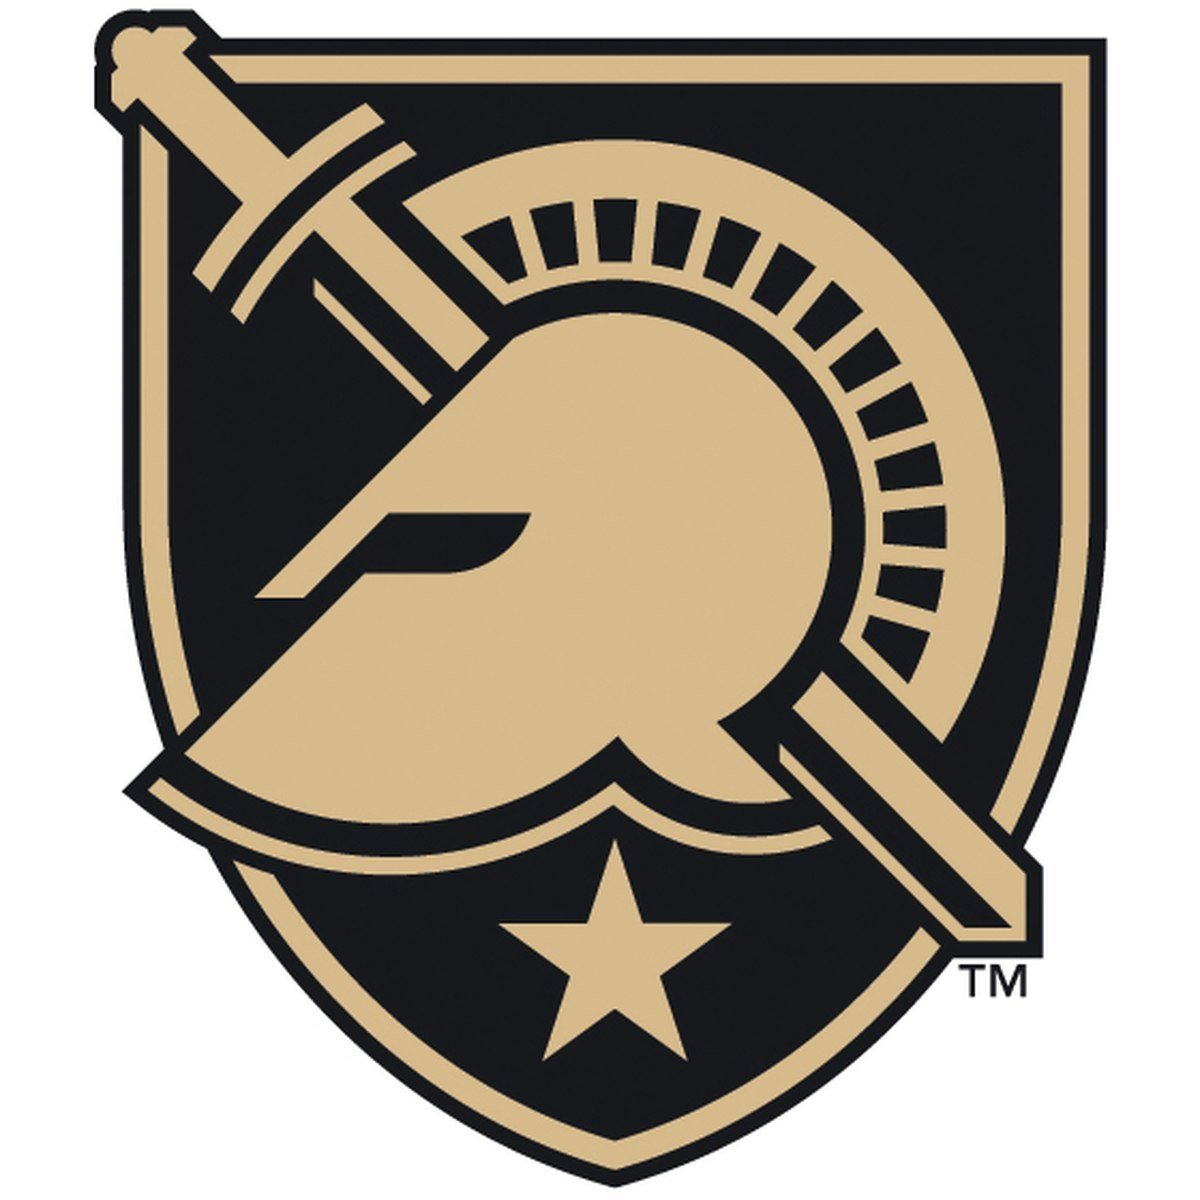 The logo for the West Point Academy athletics teams. They are called the West Point Black Knights.